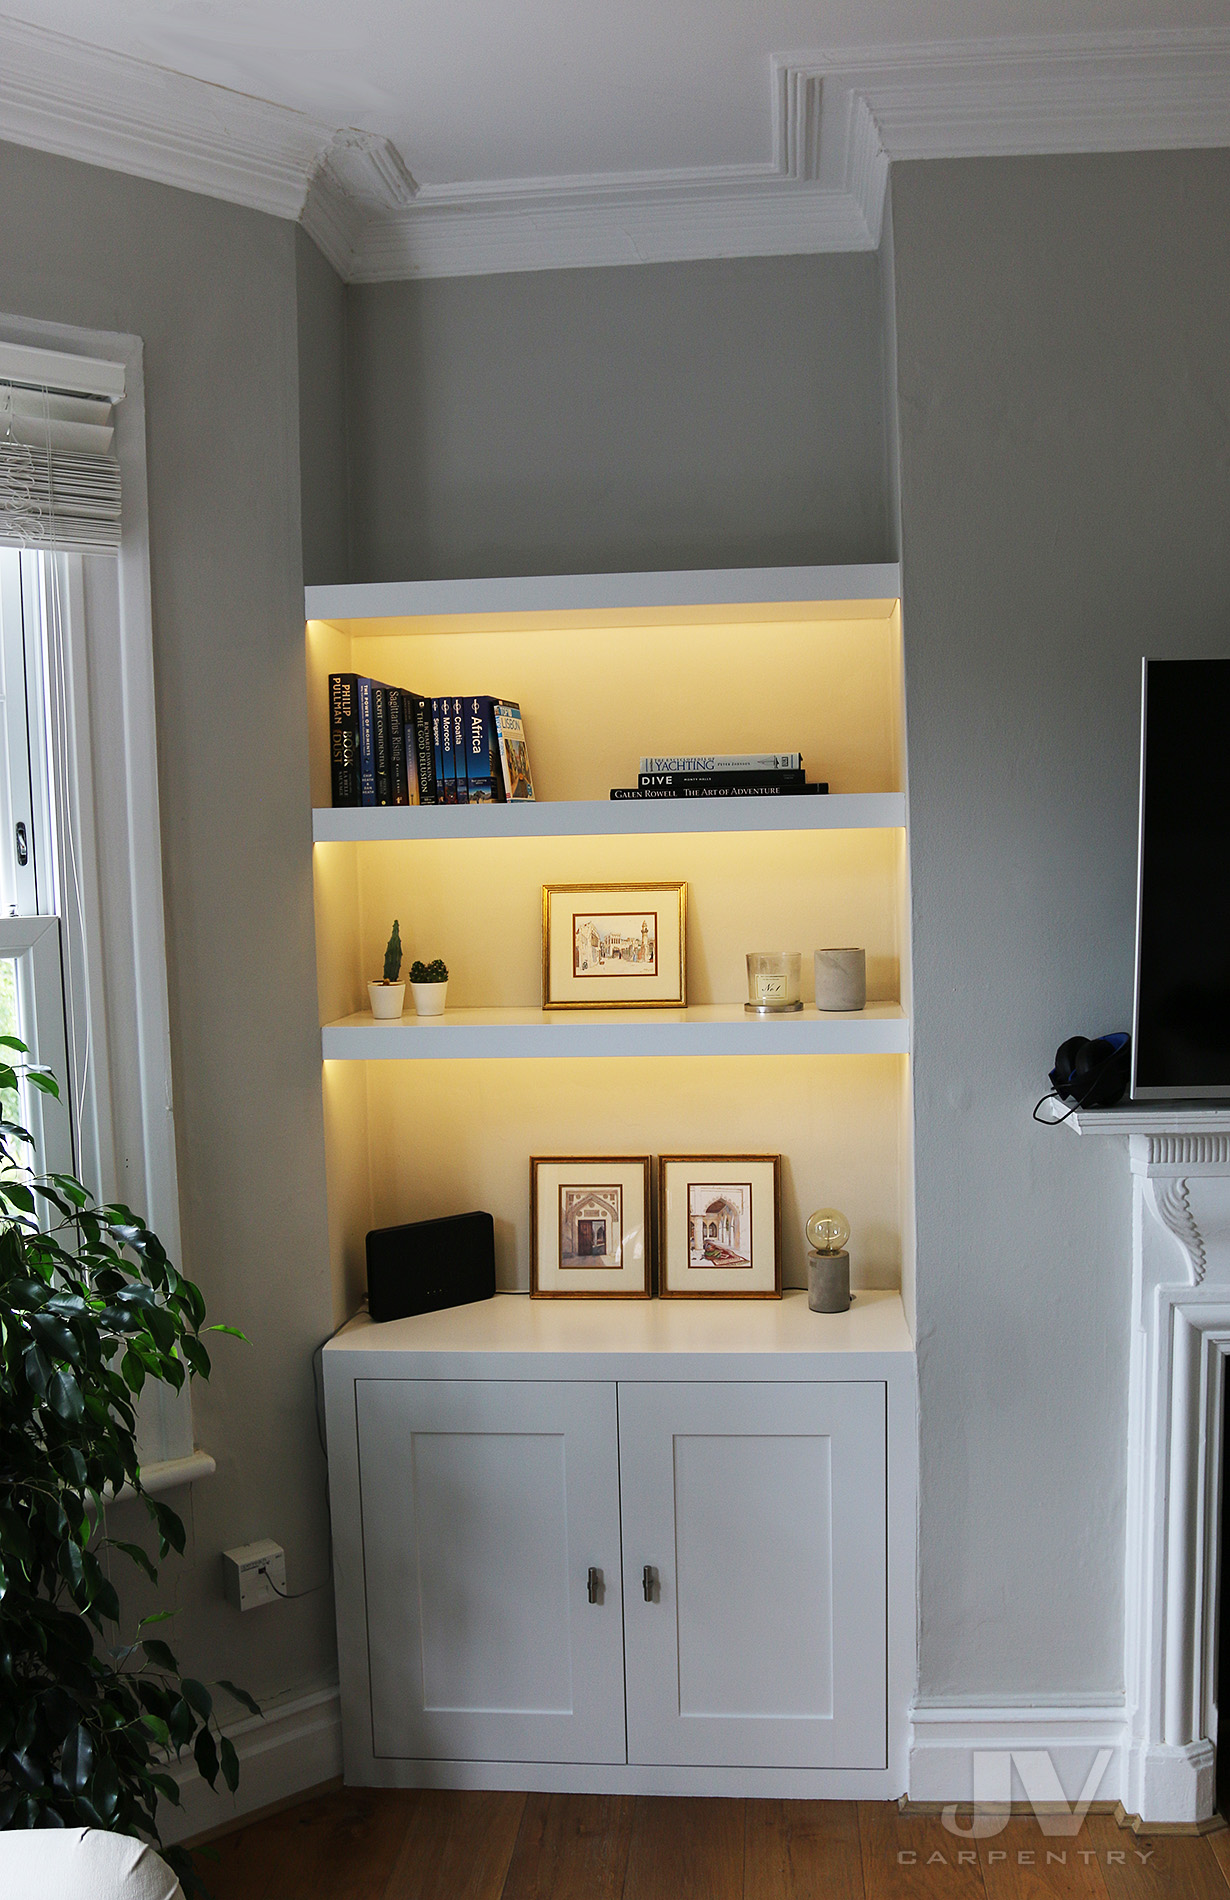 alcove shelving with lights and cabinet at the bottom LHS